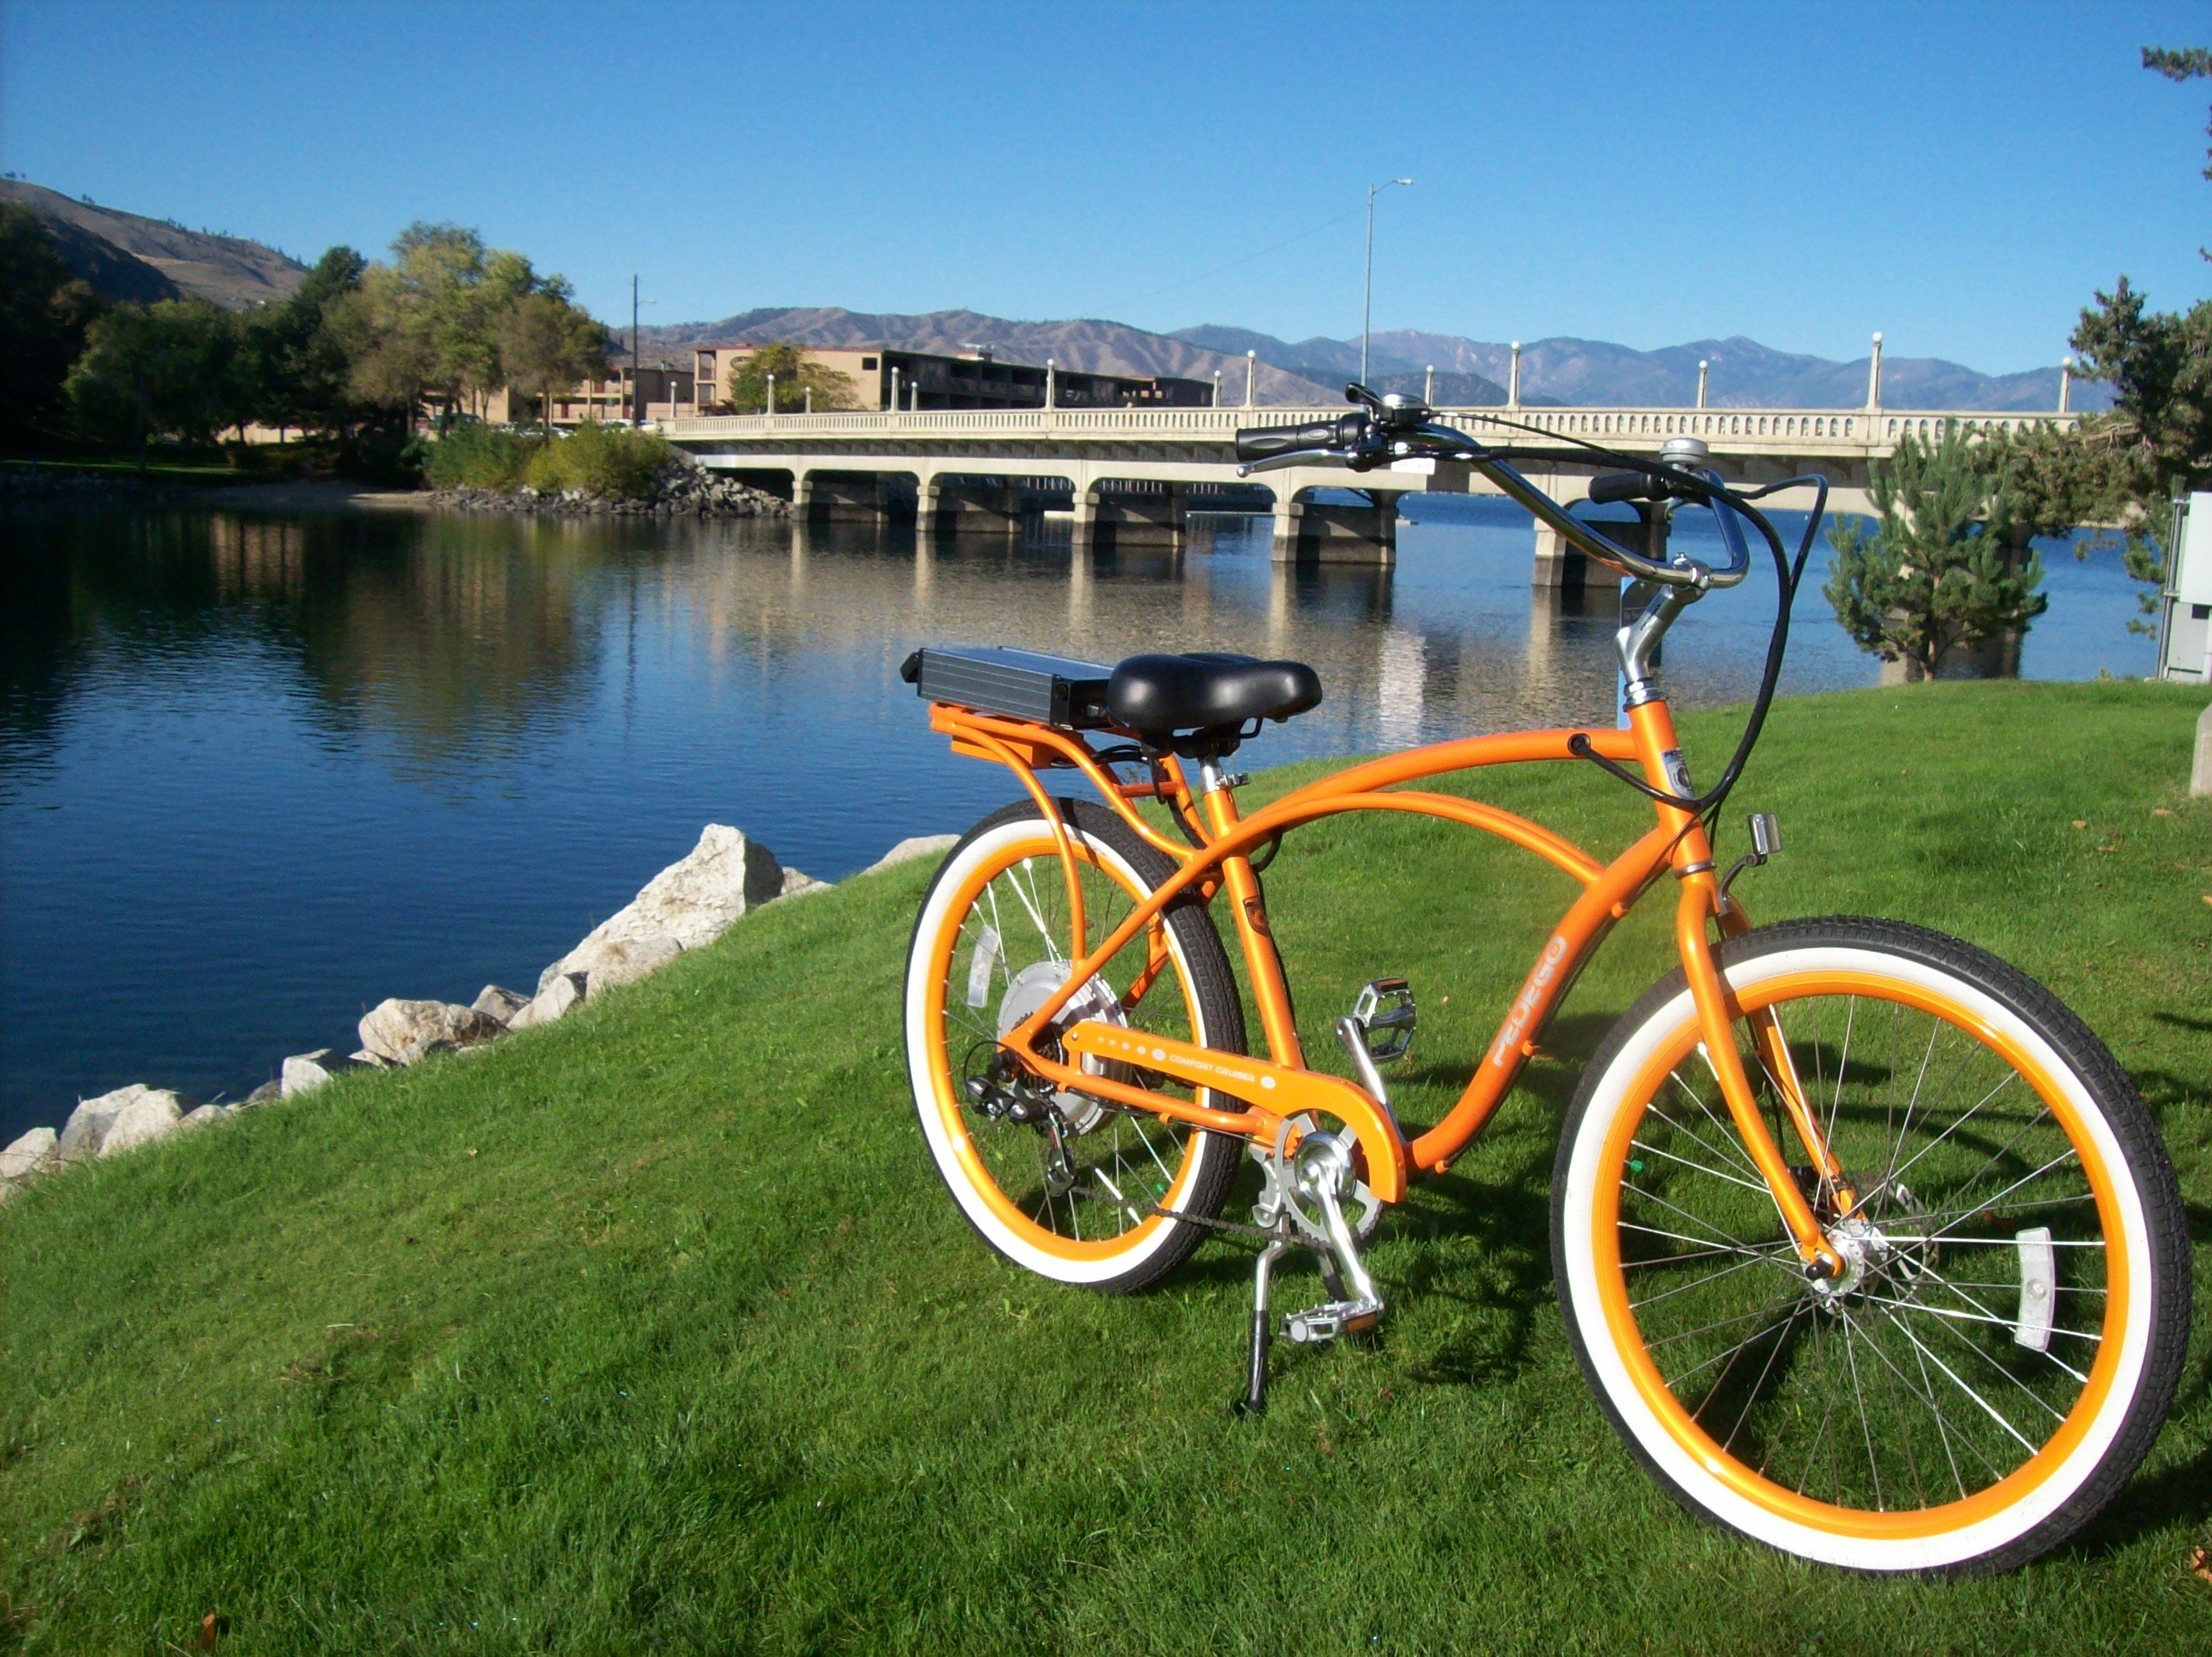 A Mervs Pedego electric bicycle in River Walk Park Chelan